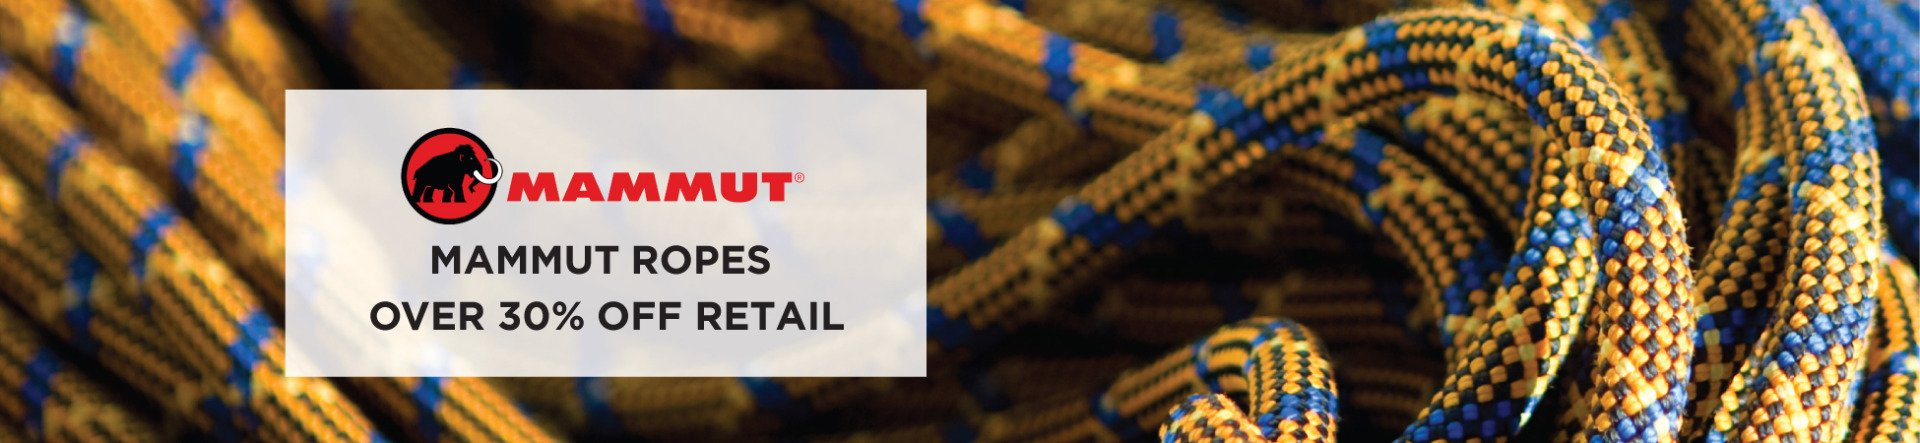 Mammut ropes over 30% off retail